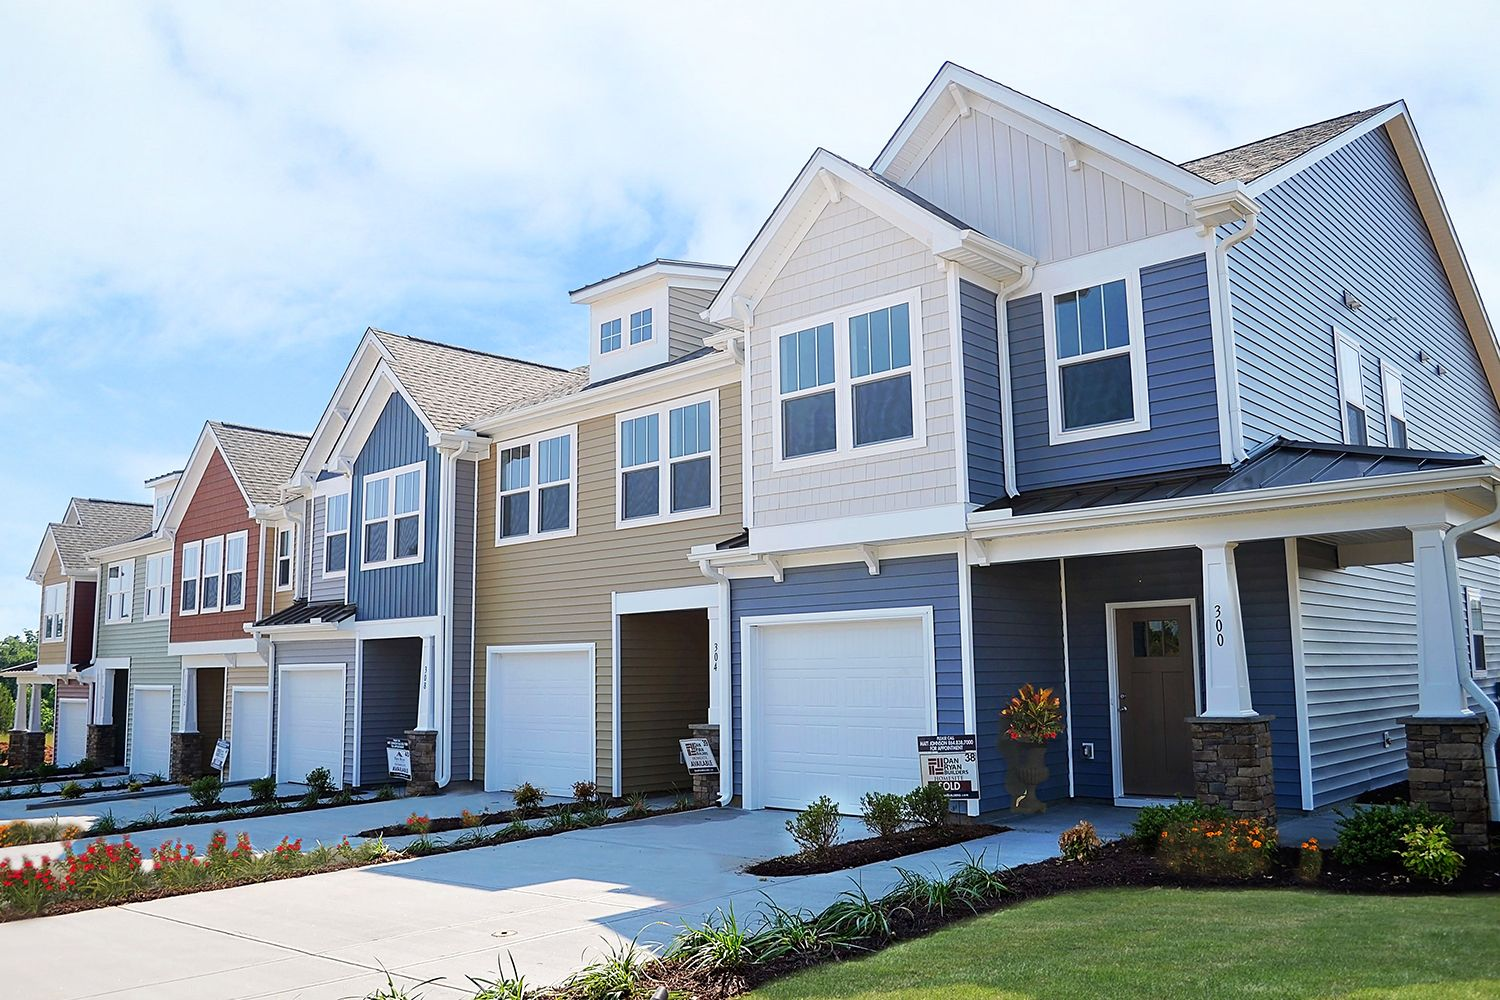 wellford personals Real estate and homes for sale in wellford, sc on oodle classifieds join millions of people using oodle to find local real estate listings, homes for sales, condos for sale and.